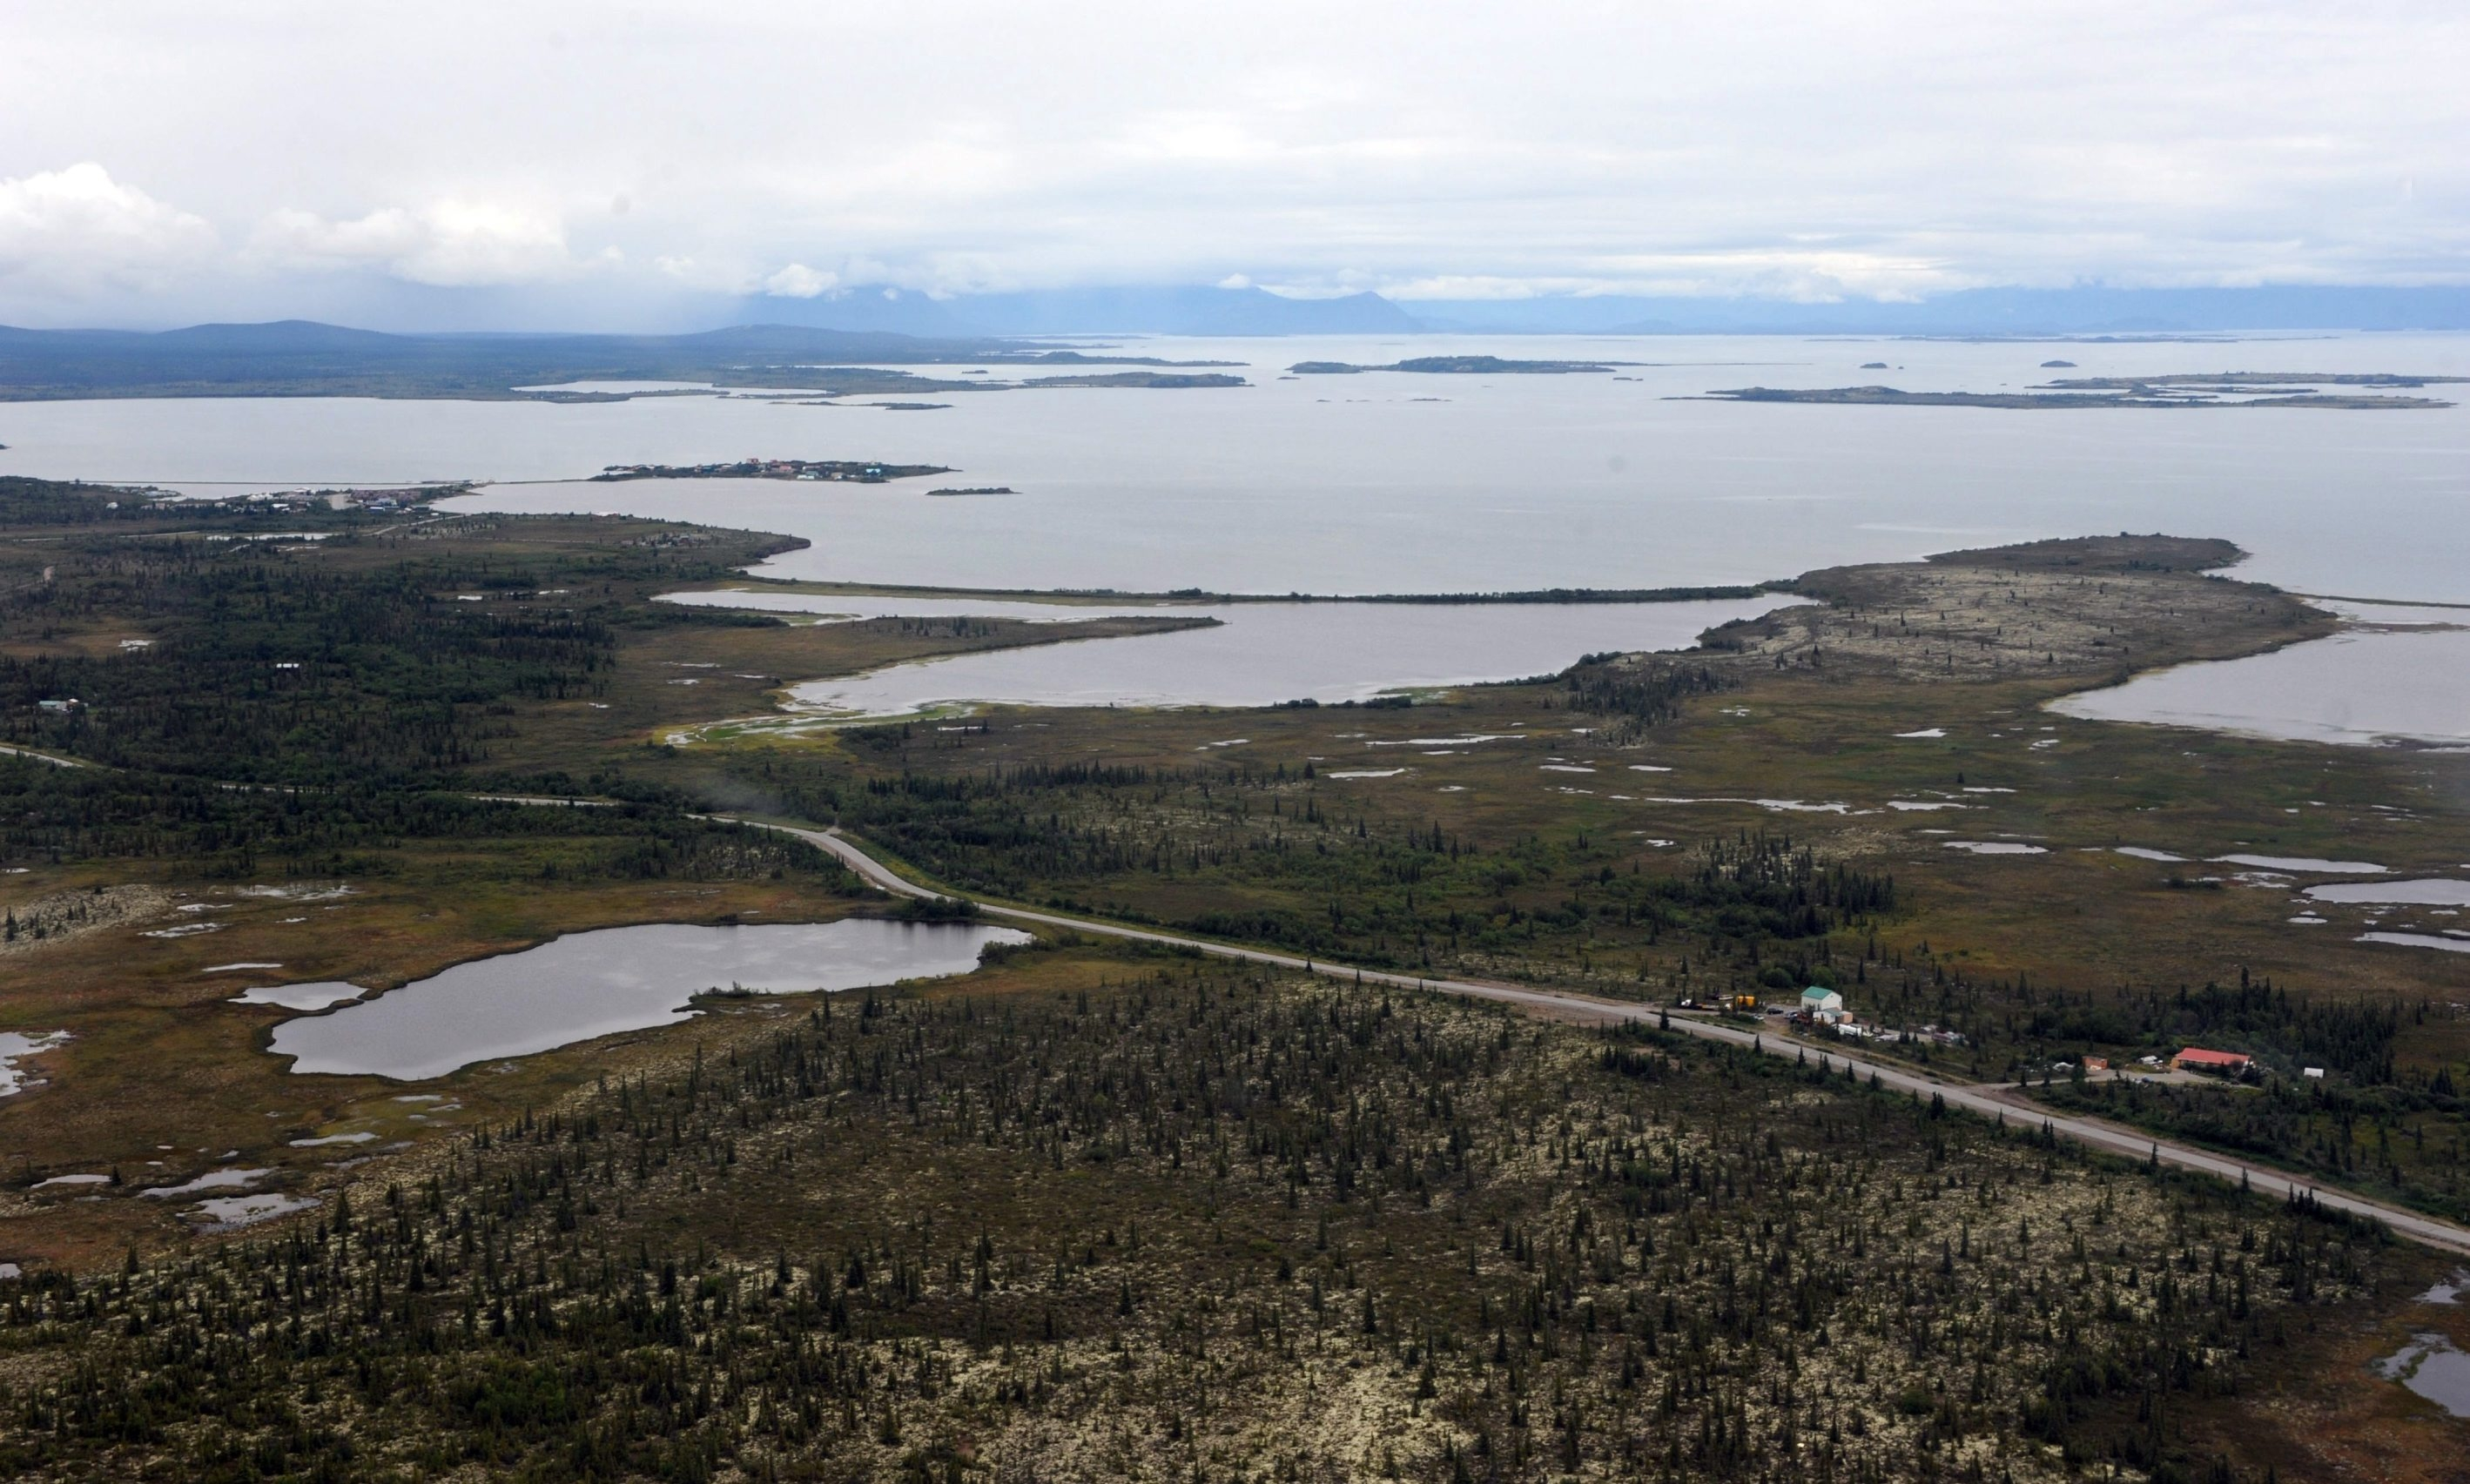 The village of Iliamna, Alaska, is just a small cluster of buildings around crystal-clear Lake Iliamna, a nursery for wild salmon. At 80 miles long, Lake Iliamna is the largest U.S. freshwater lake outside the Great Lakes.